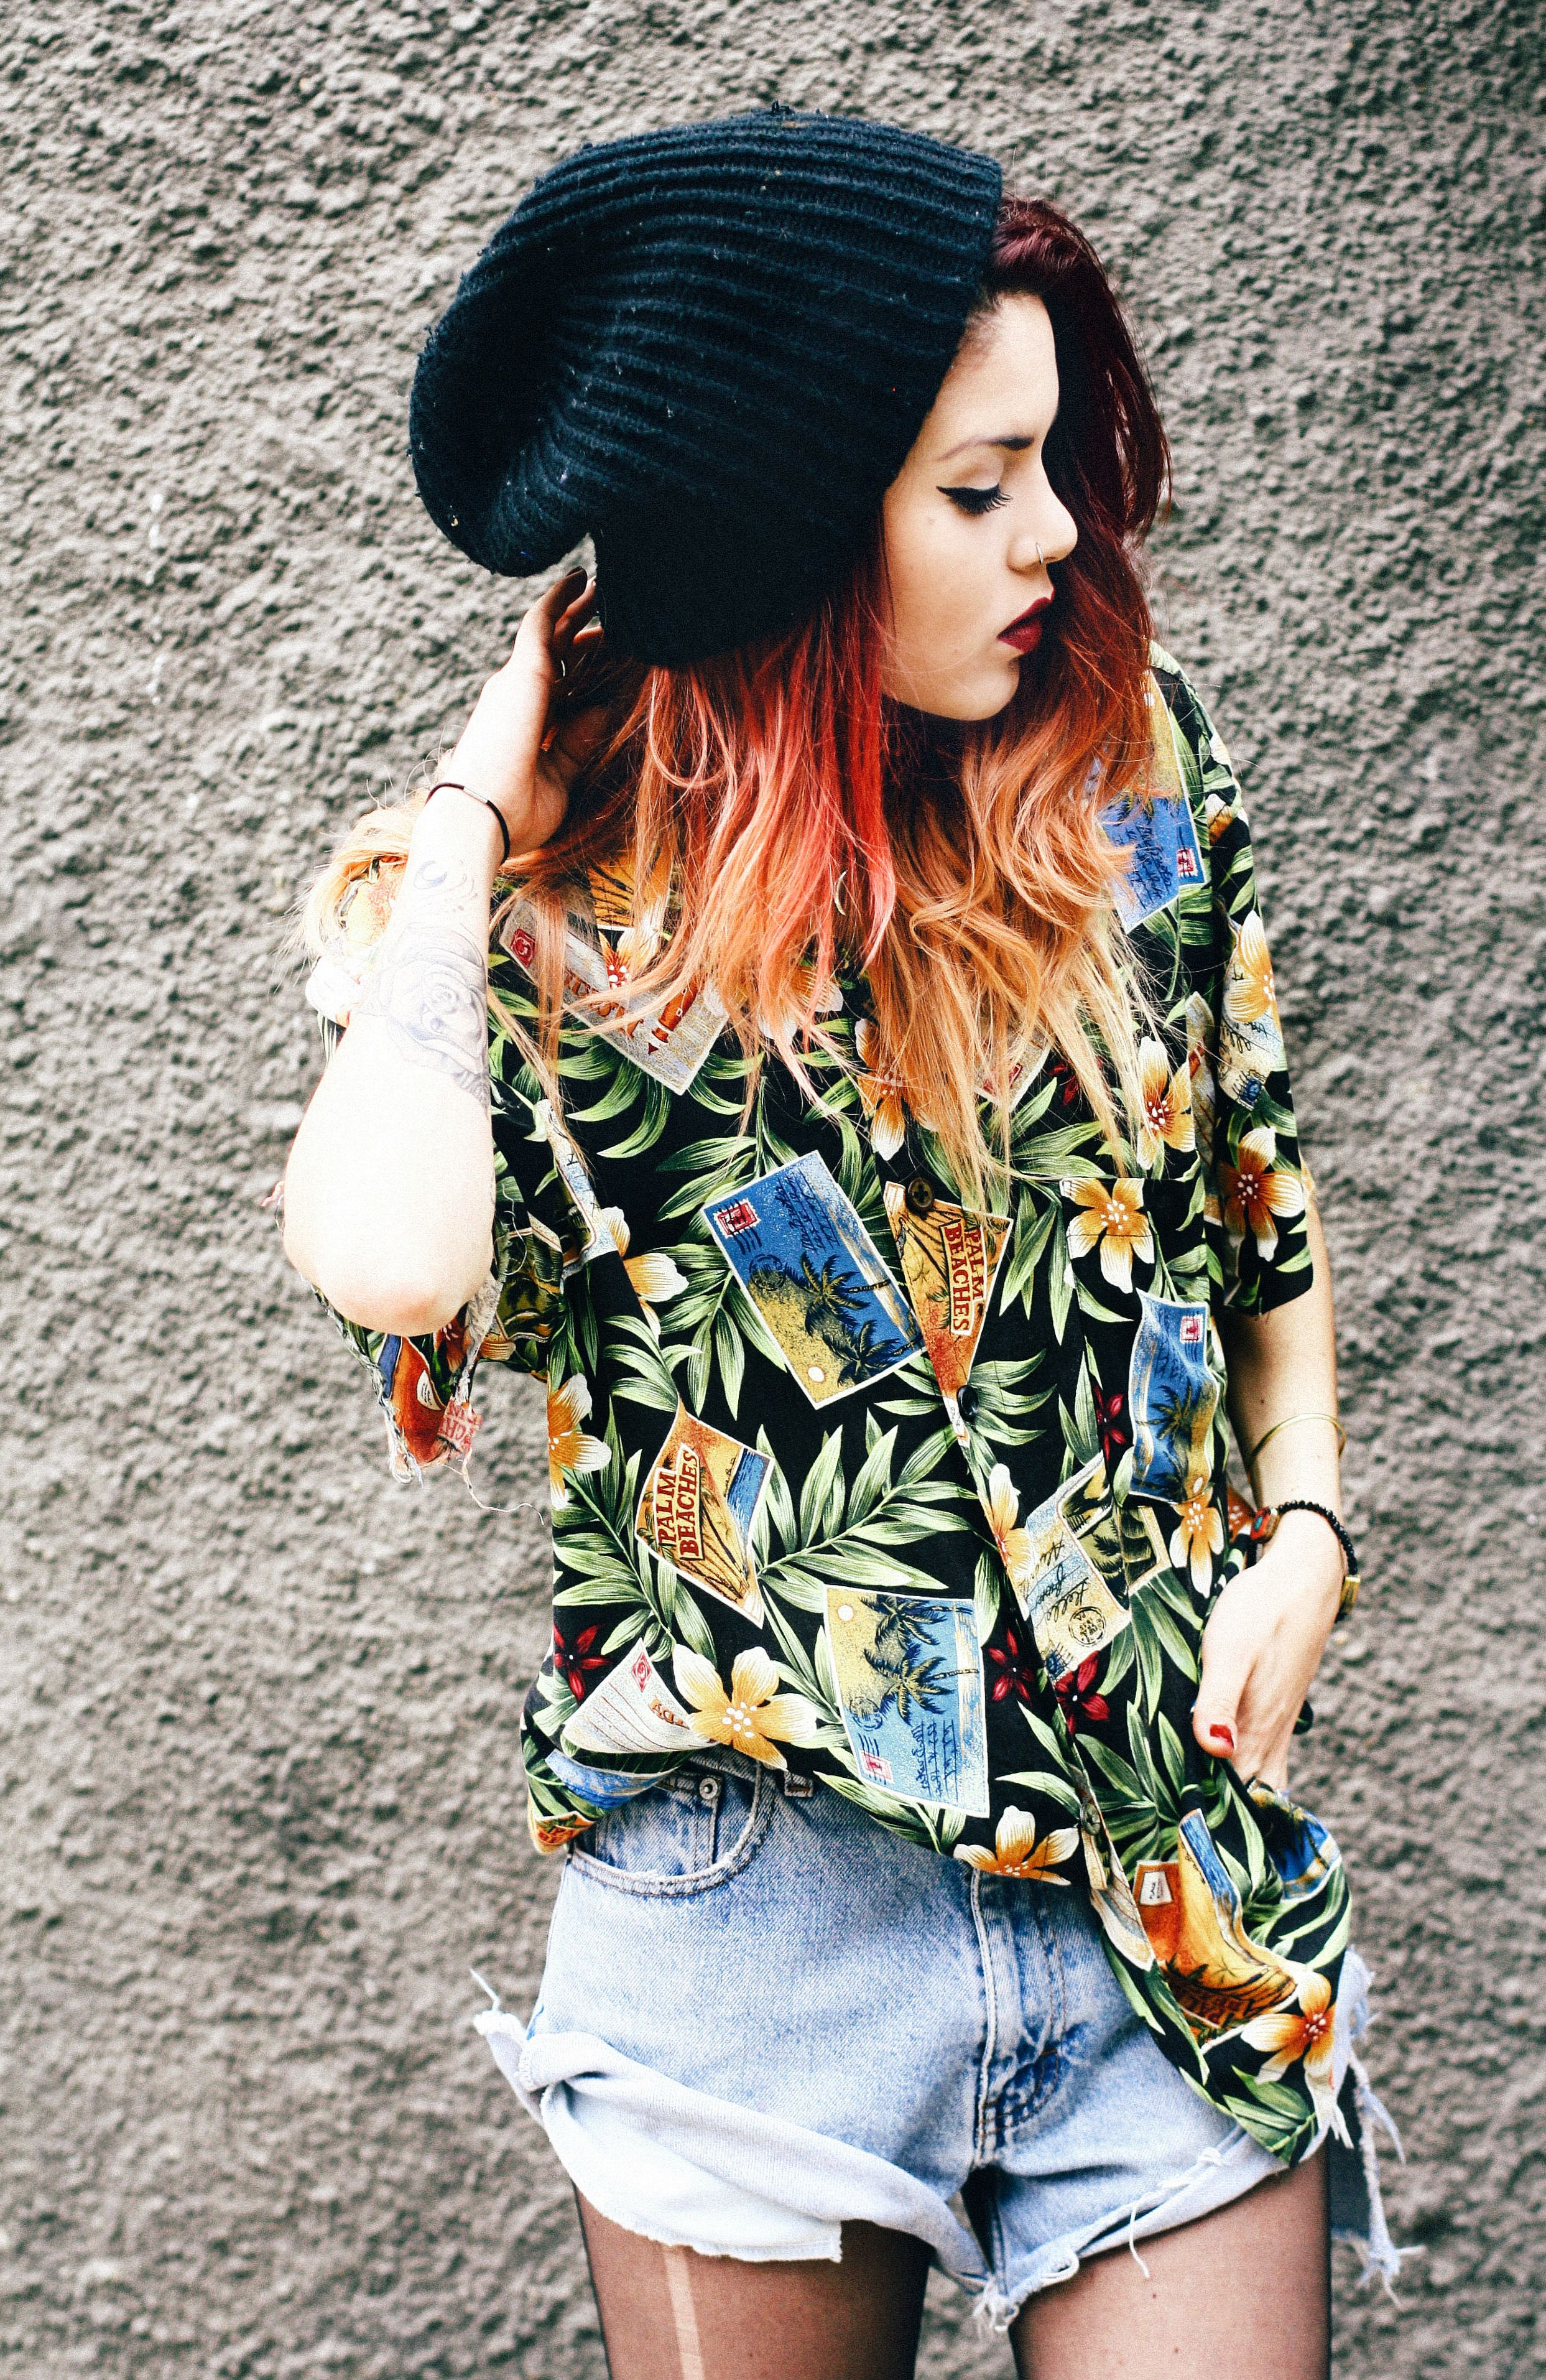 Pin by Alyssa Hermelin on cute clothes